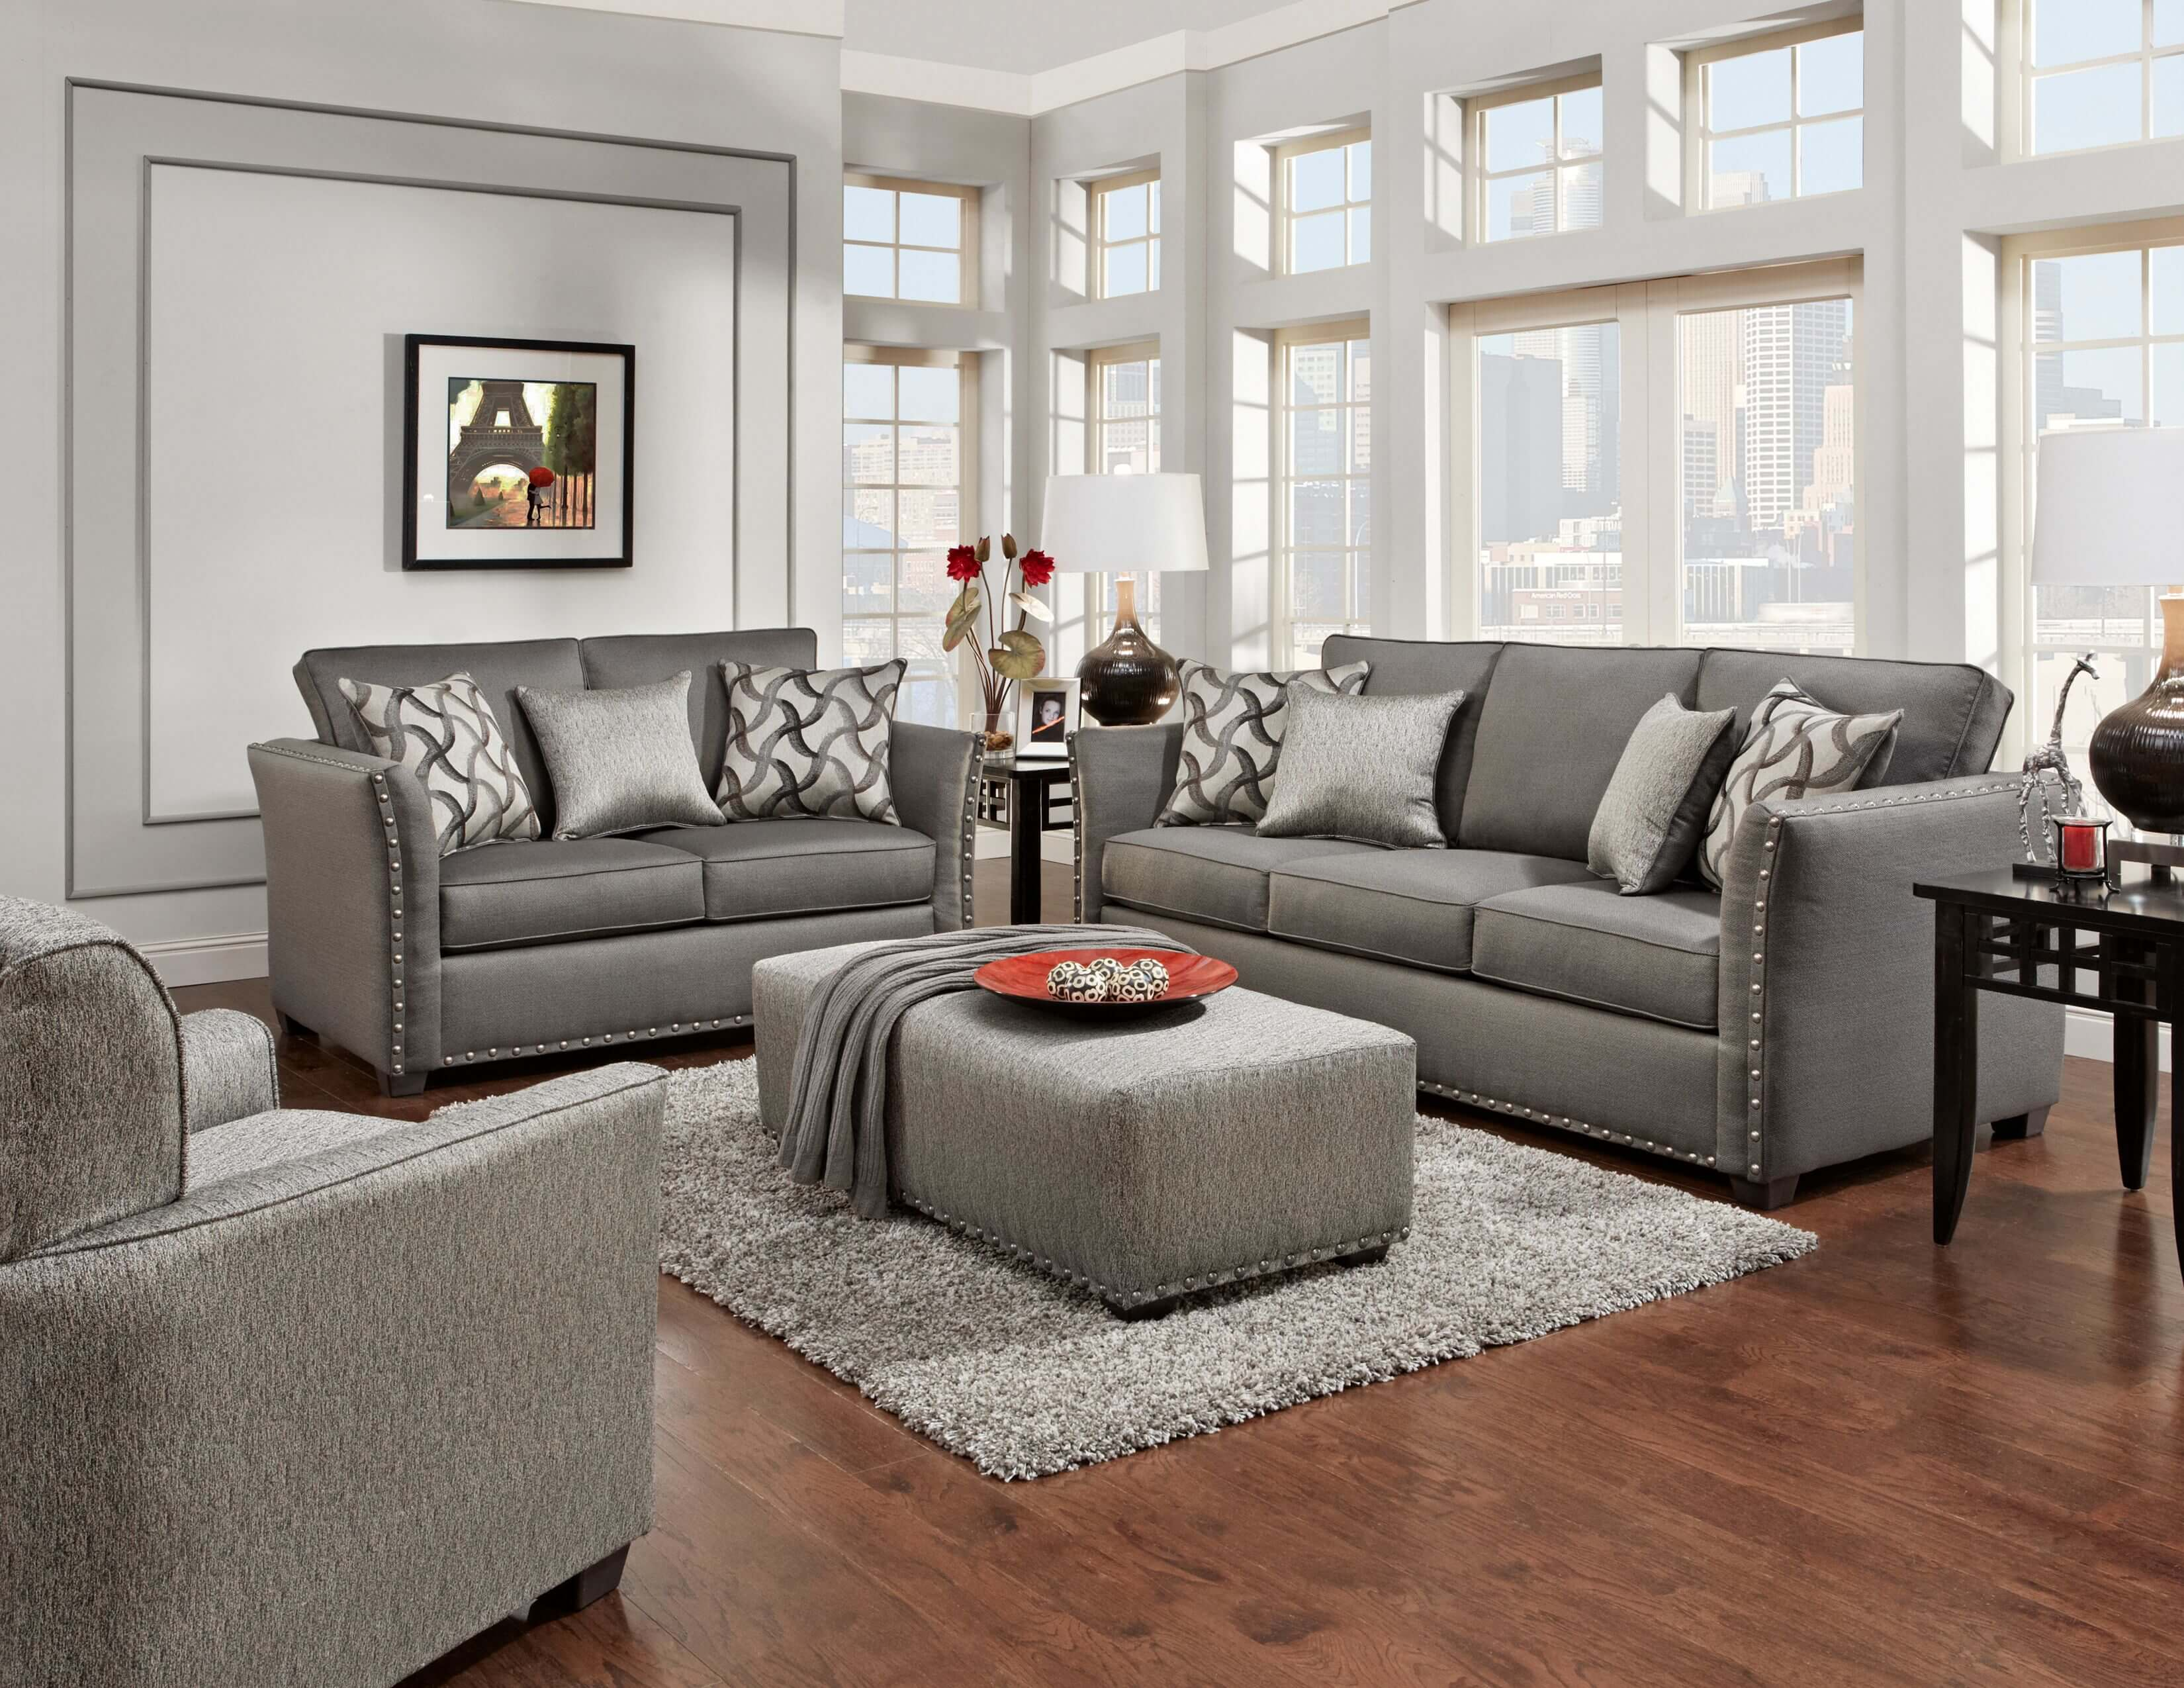 Living Room Sofas Sets Technique Charcoal Sofa And Loveseat | Fabric Living Room